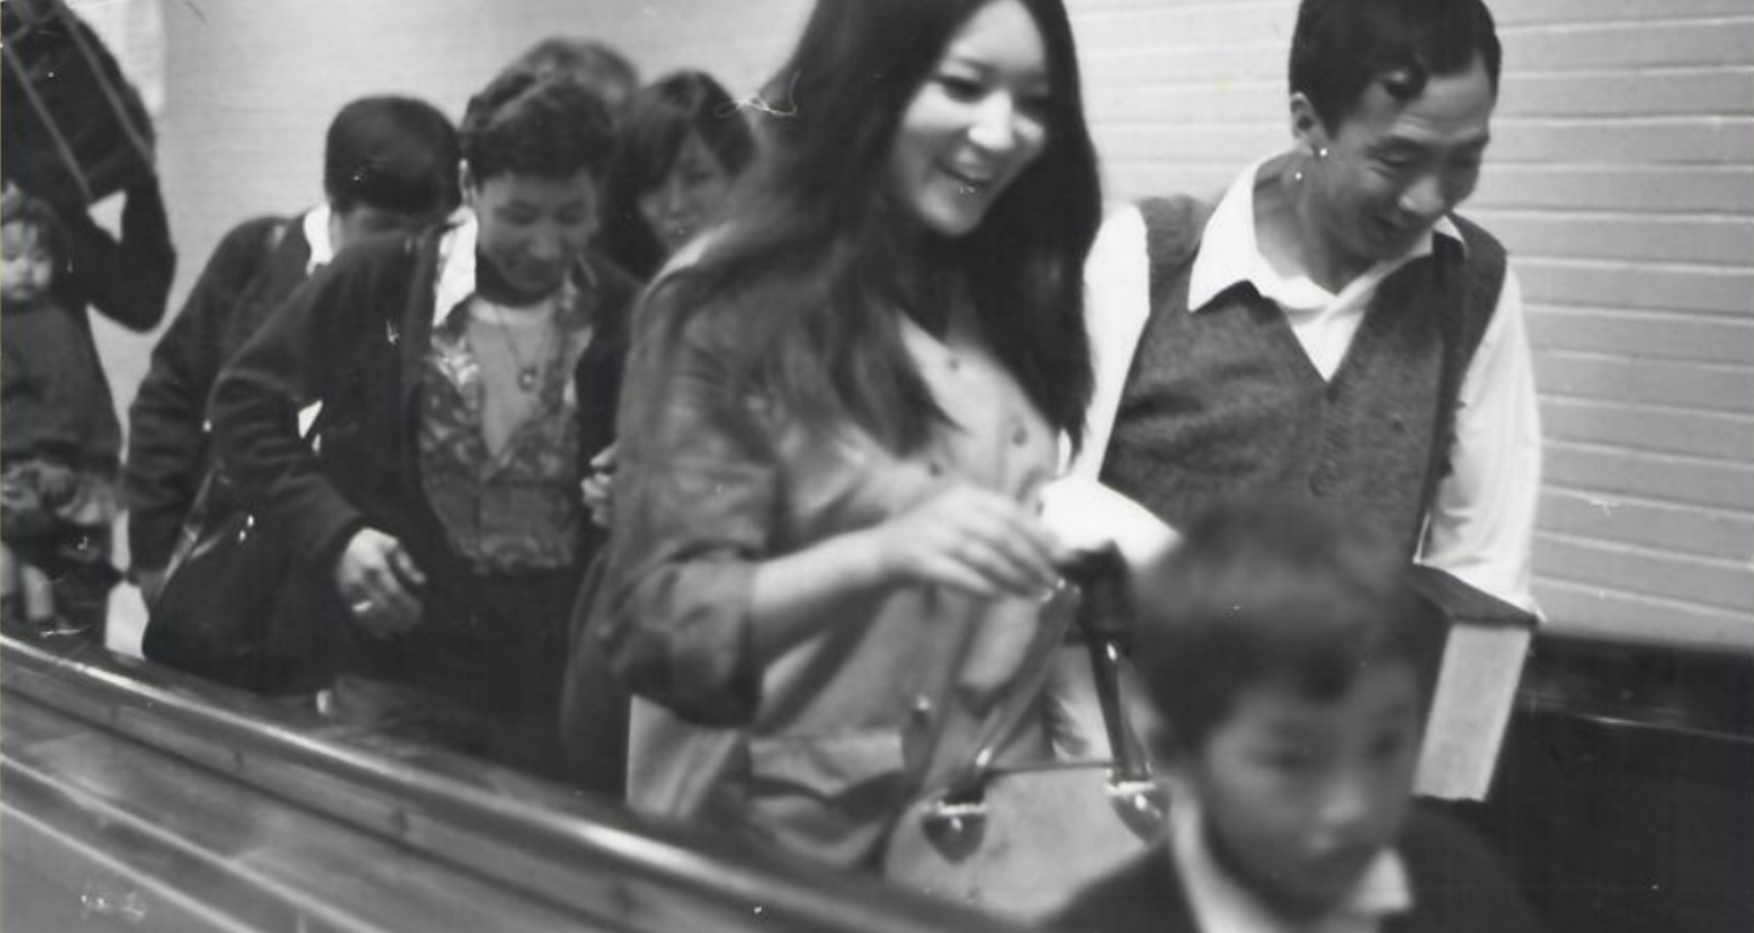 Second group of Tibetans arrive at the Montreal Dorval International Airport (June 31971).